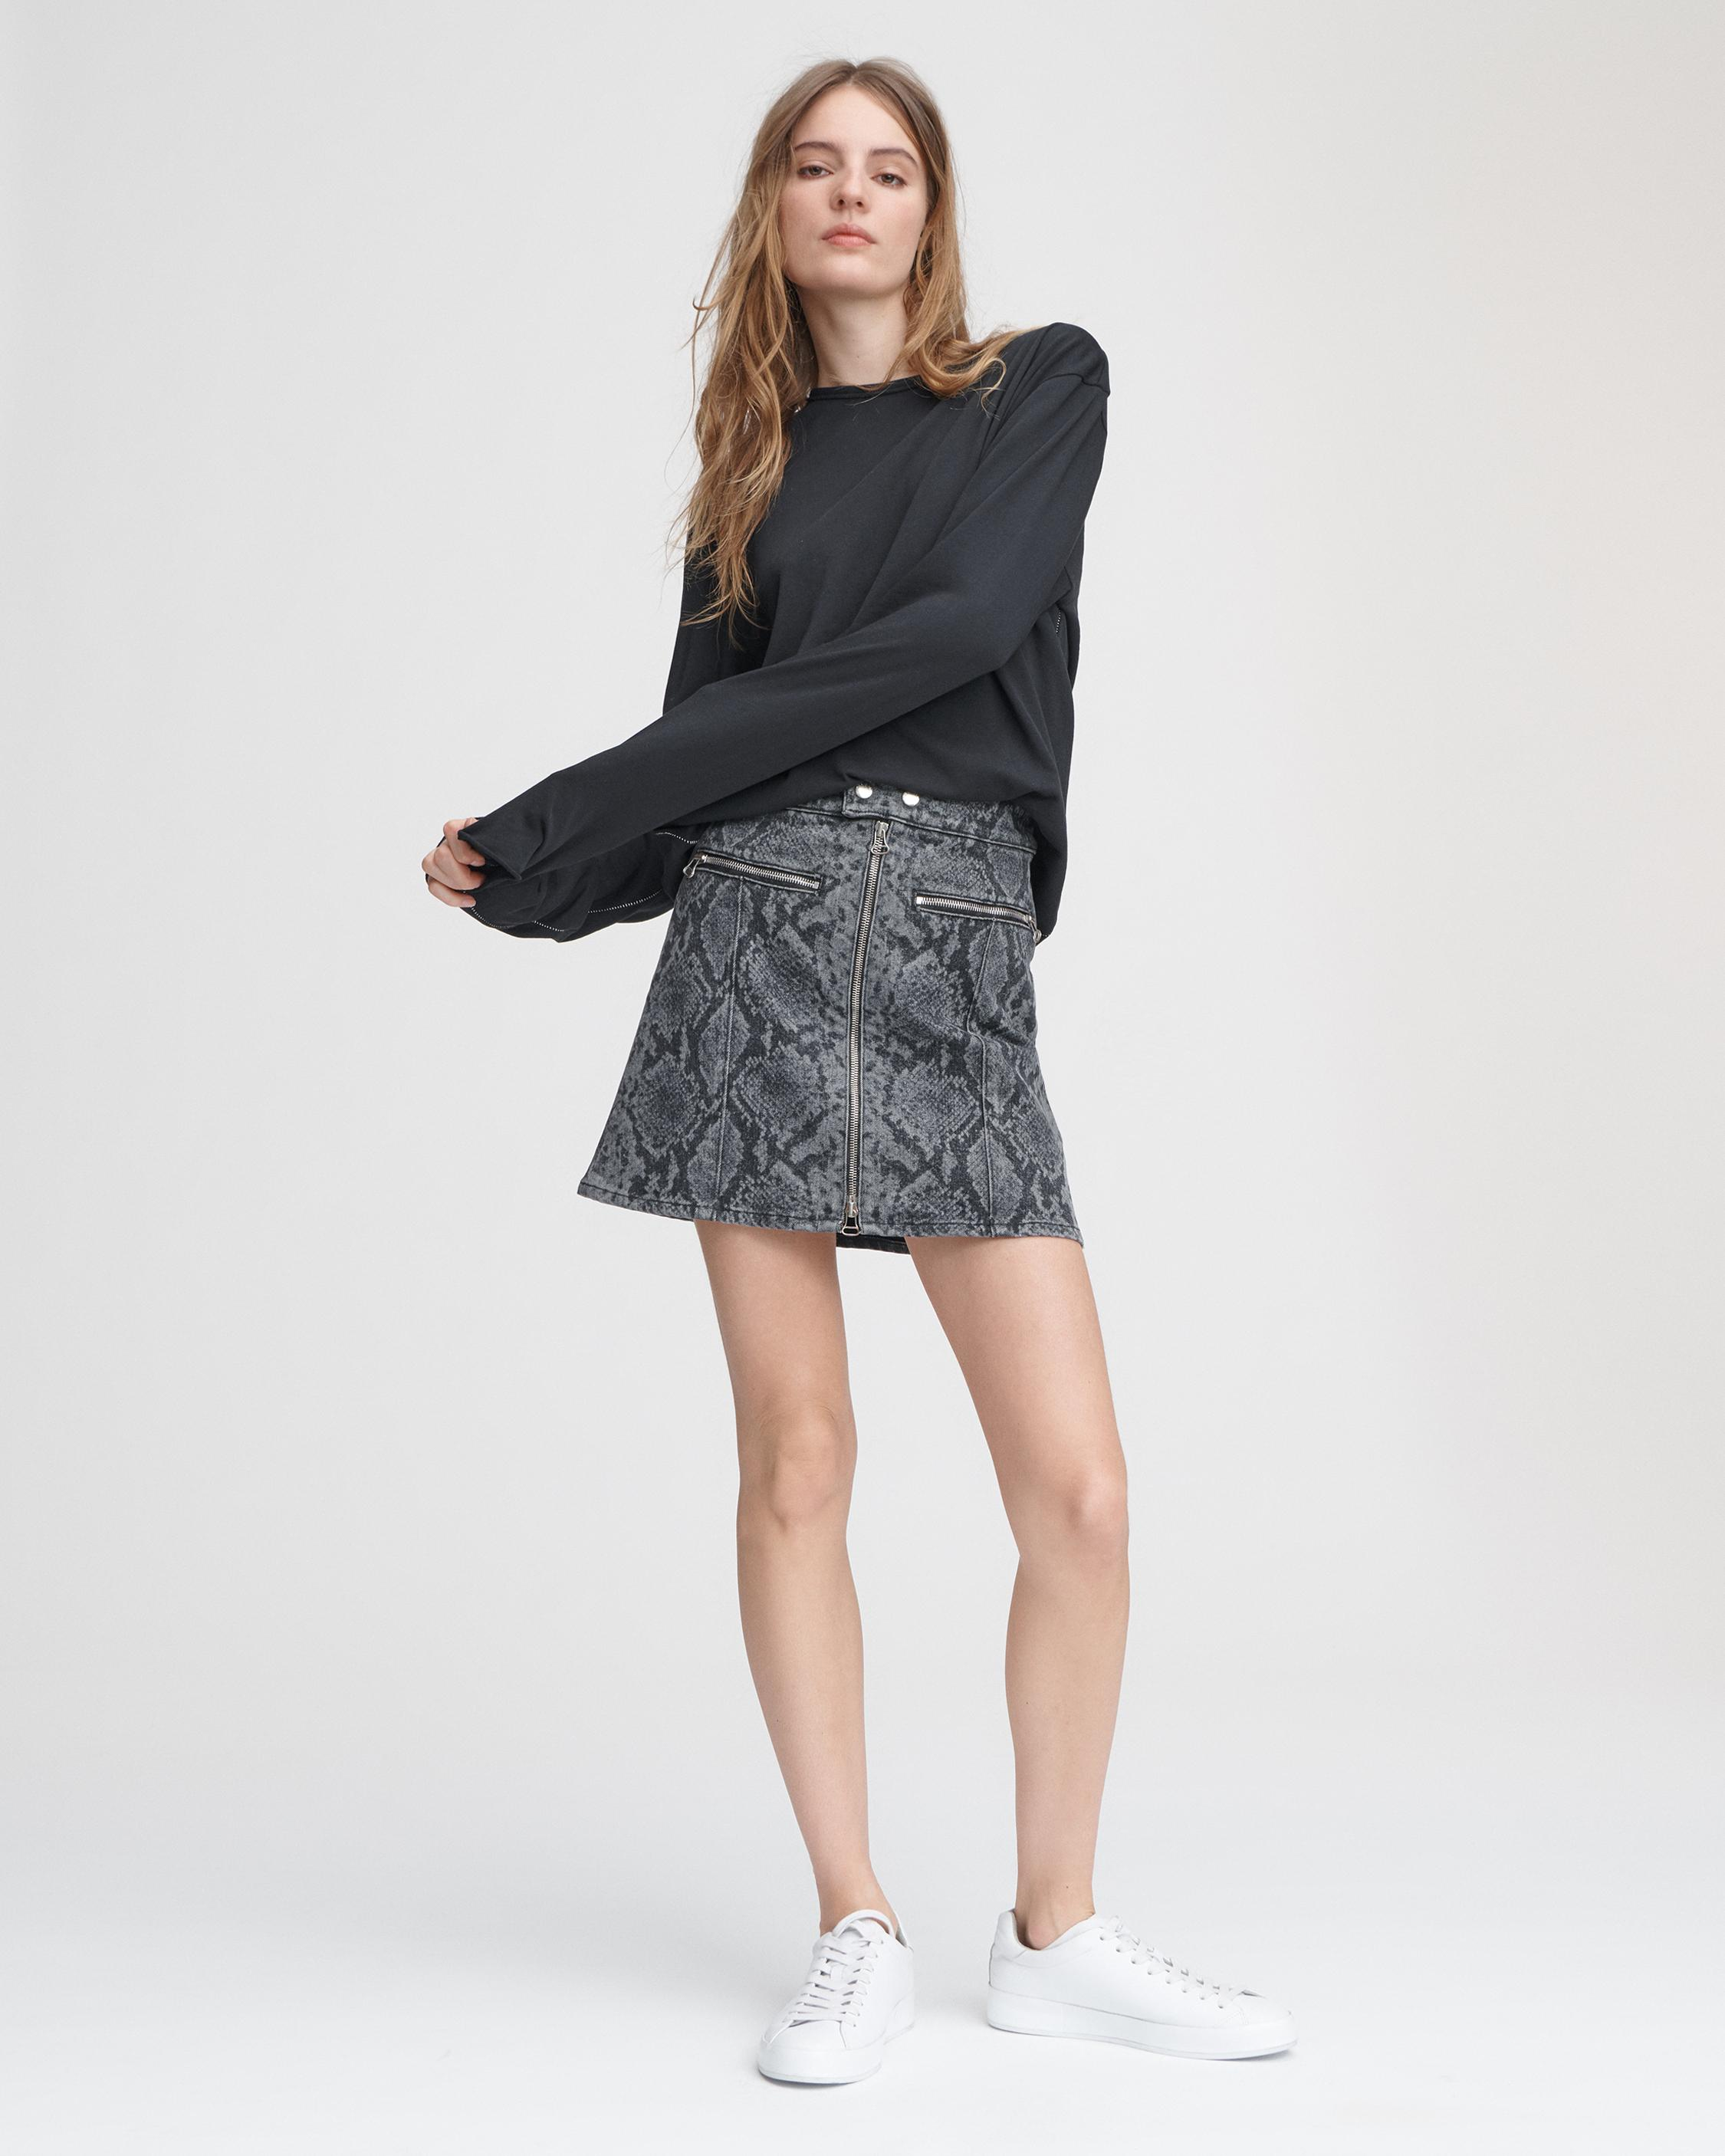 ISABEL SKIRT